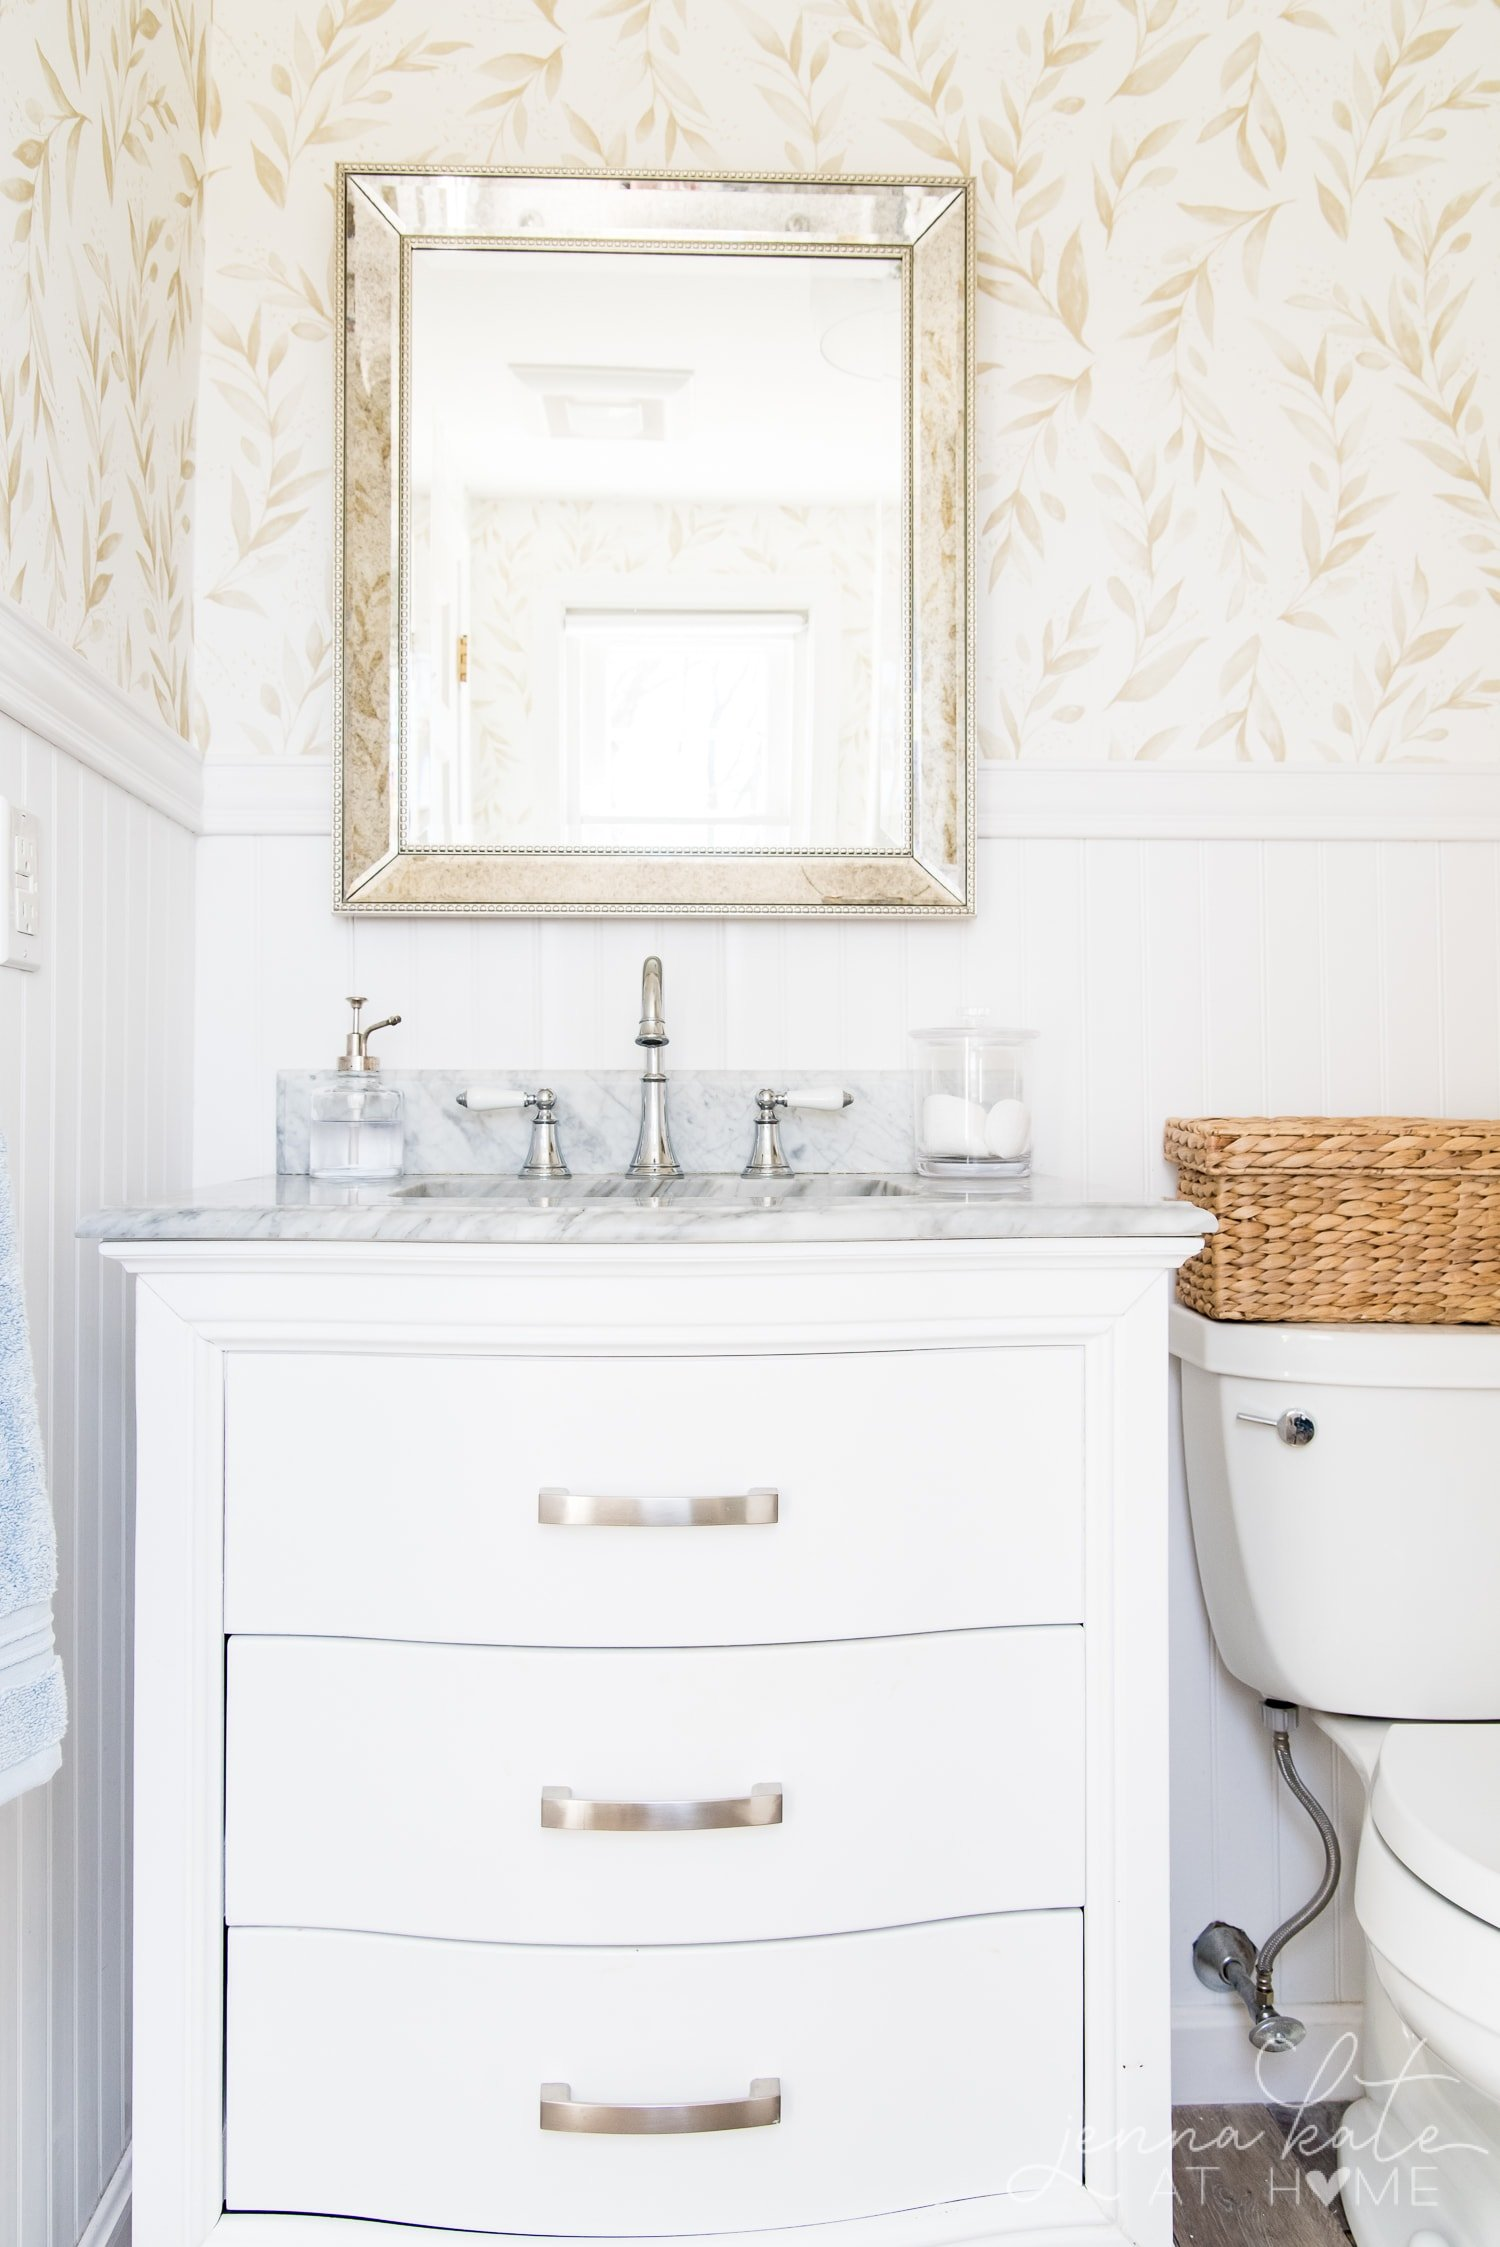 White vanity and marble top with a mercury glass mirror overhead showcasing the elegant floral bathroom wallpaper